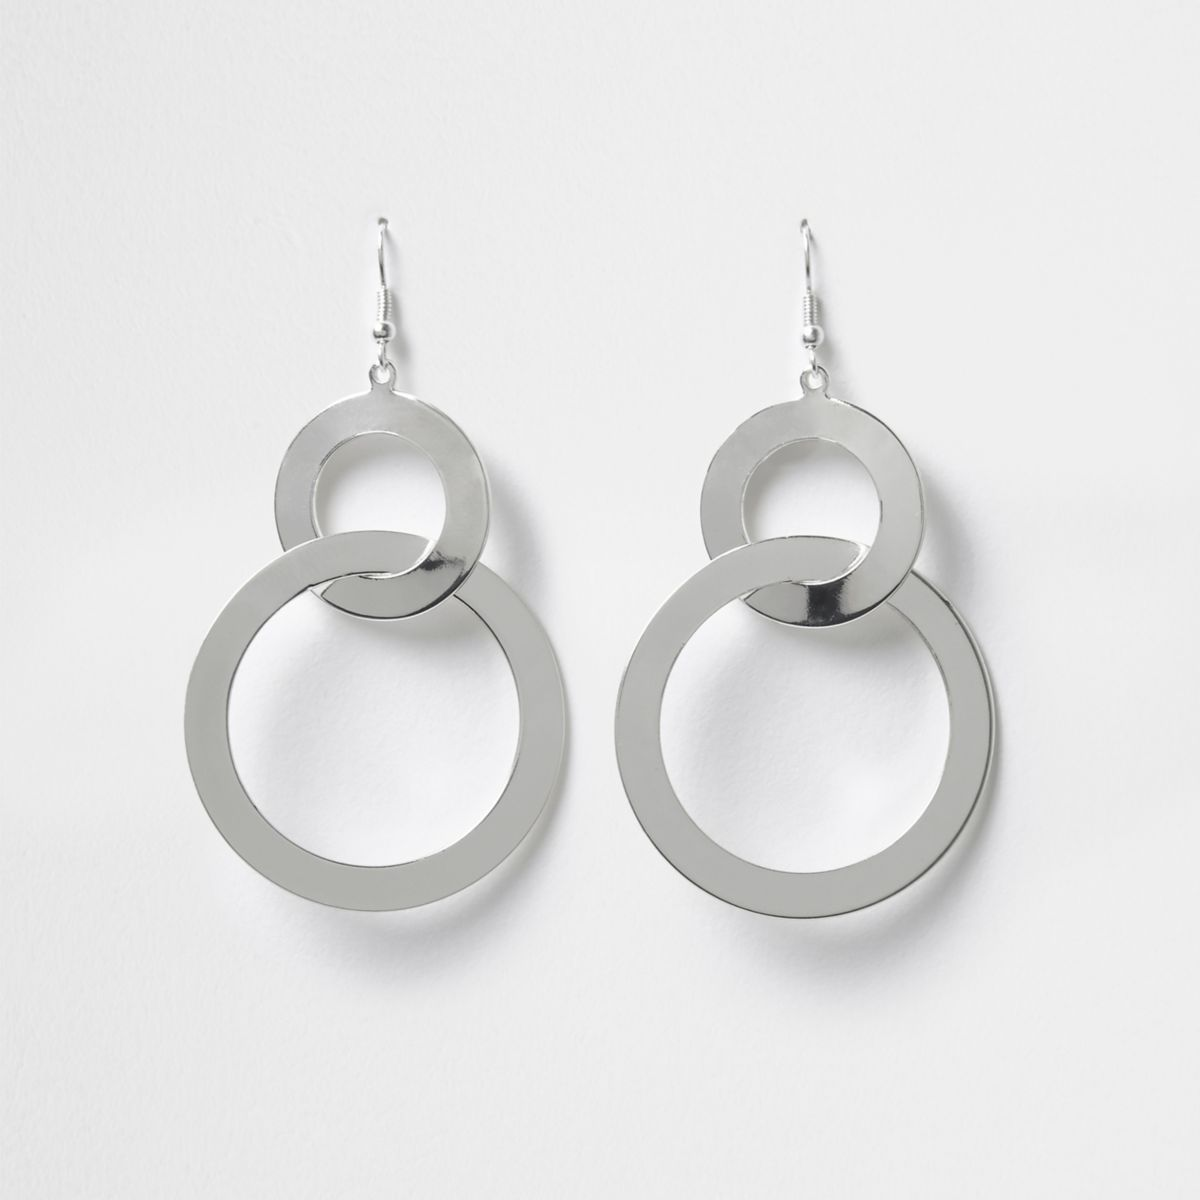 Silver tone double circle dangle earrings